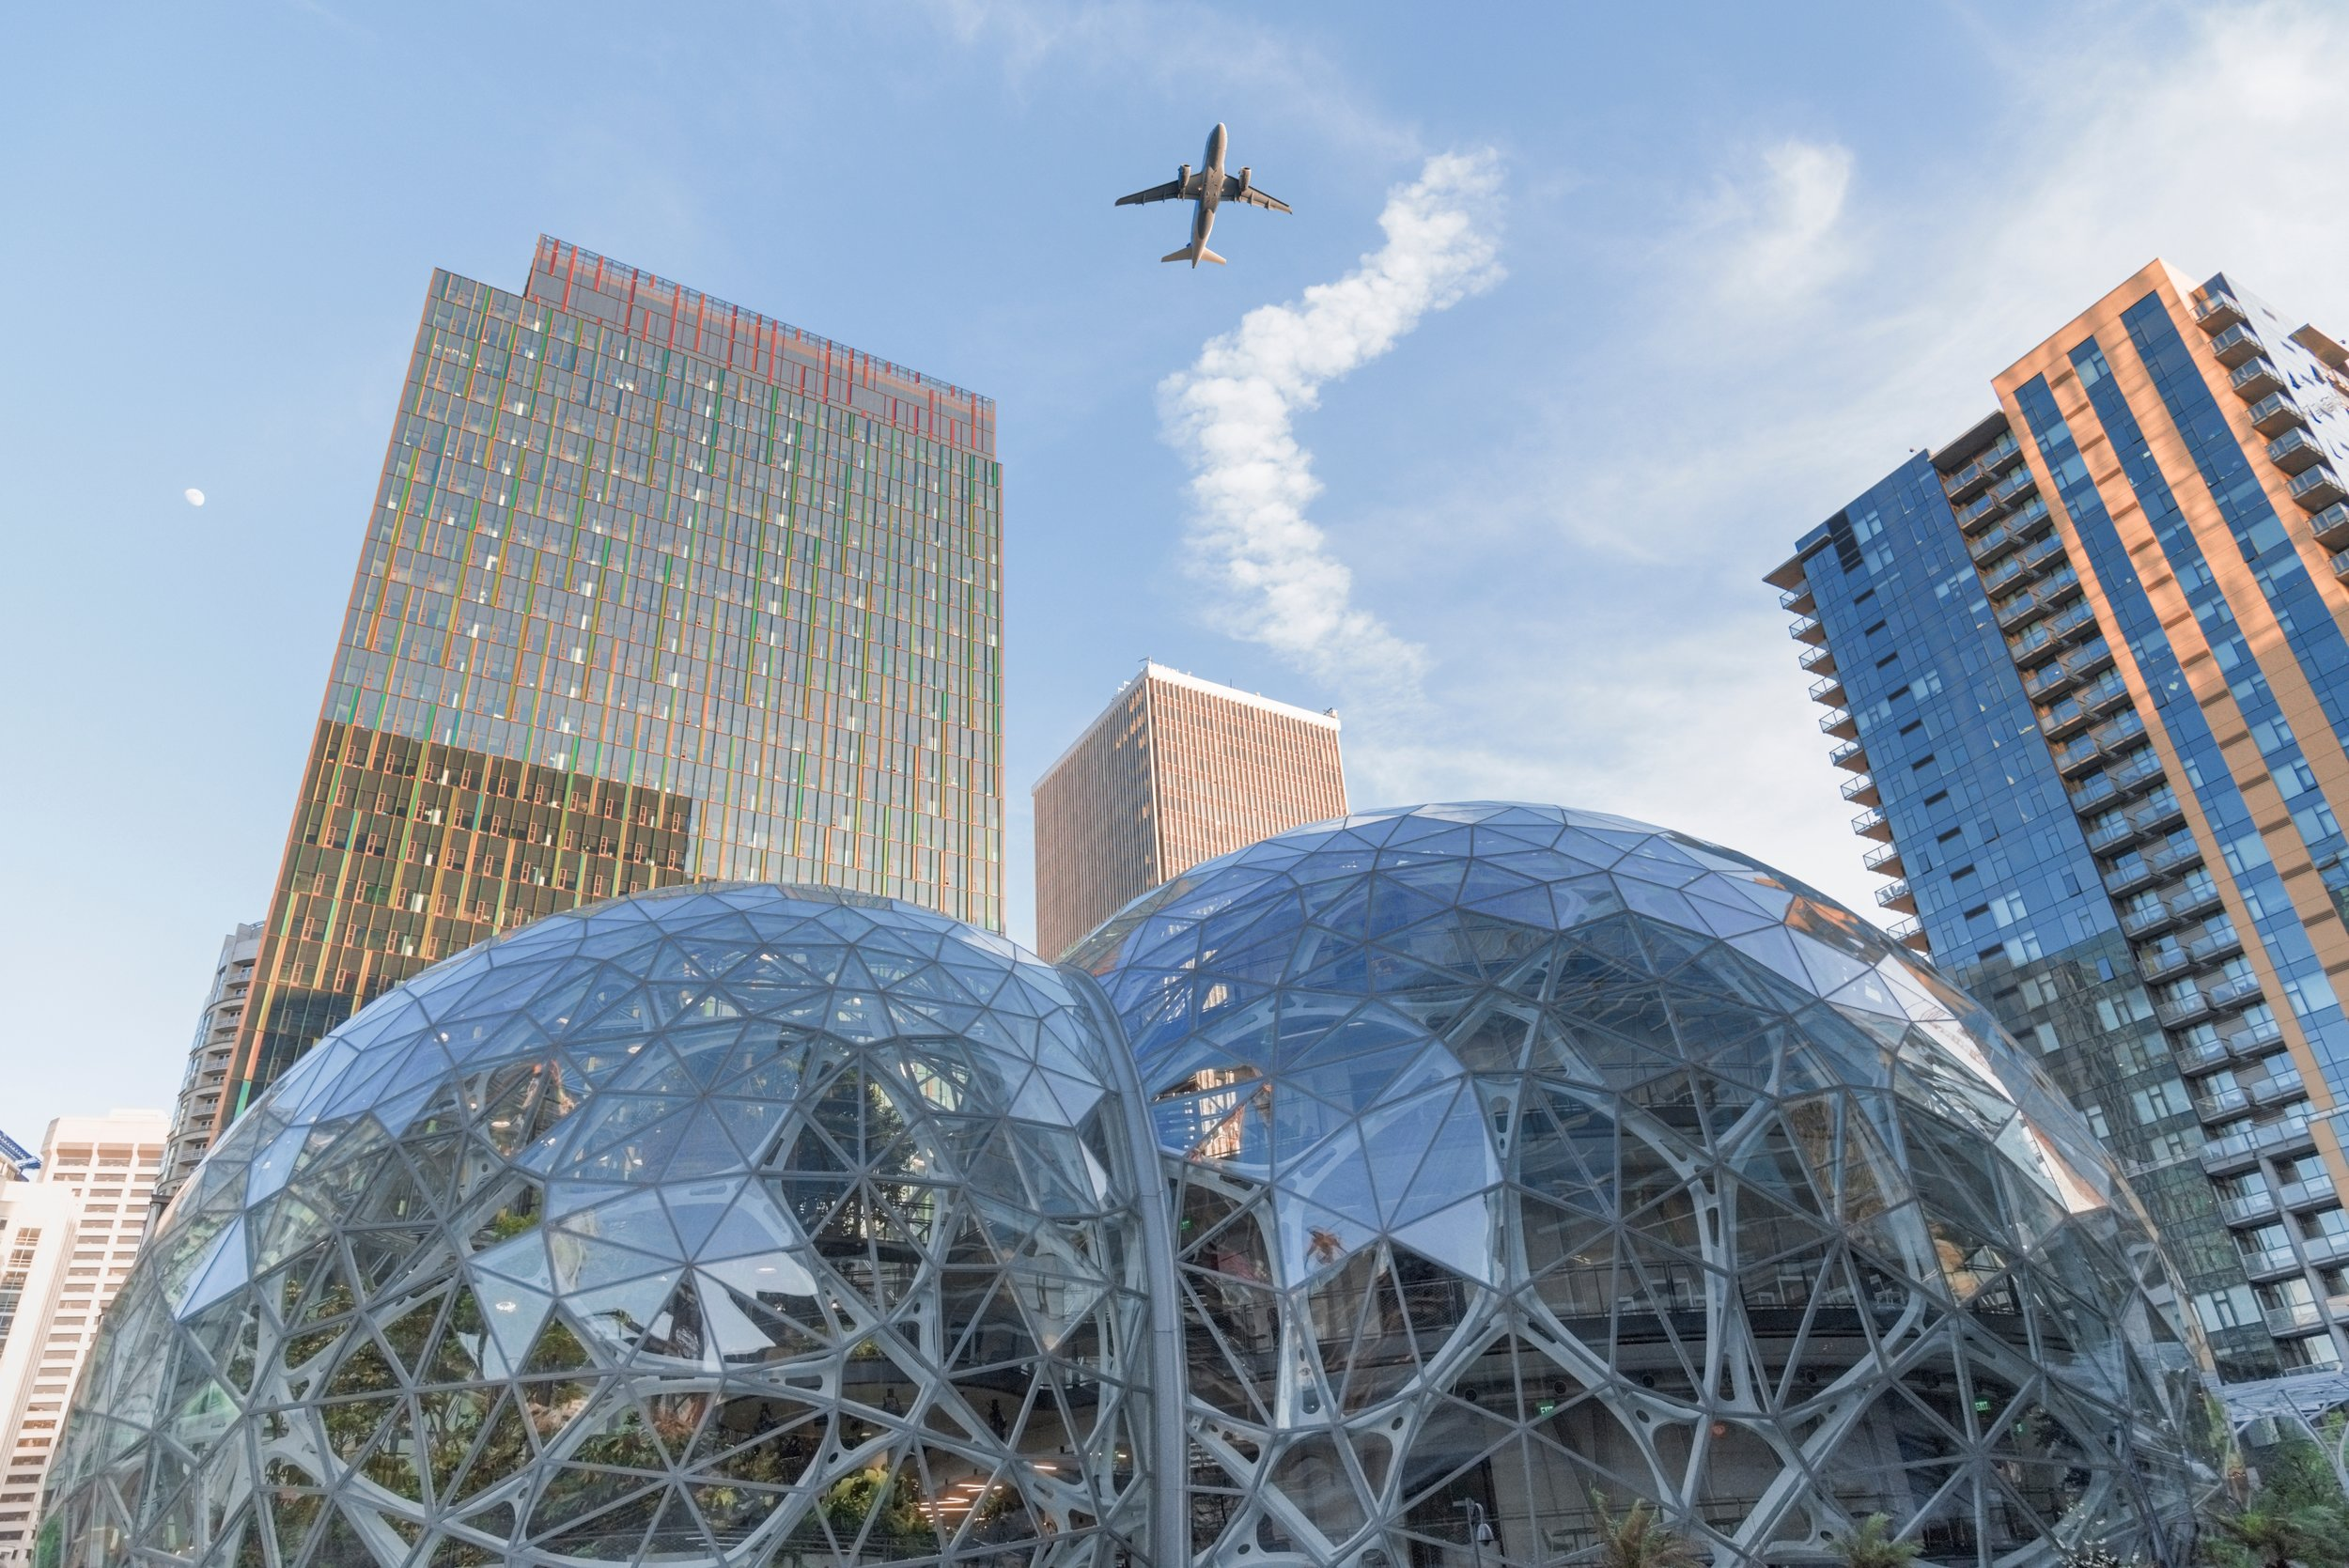 airplane-flying-over-the-amazon-world-headquarters-campus-in-downtown-seattle-washington-afternoon_t20_NGK8WQ.jpg